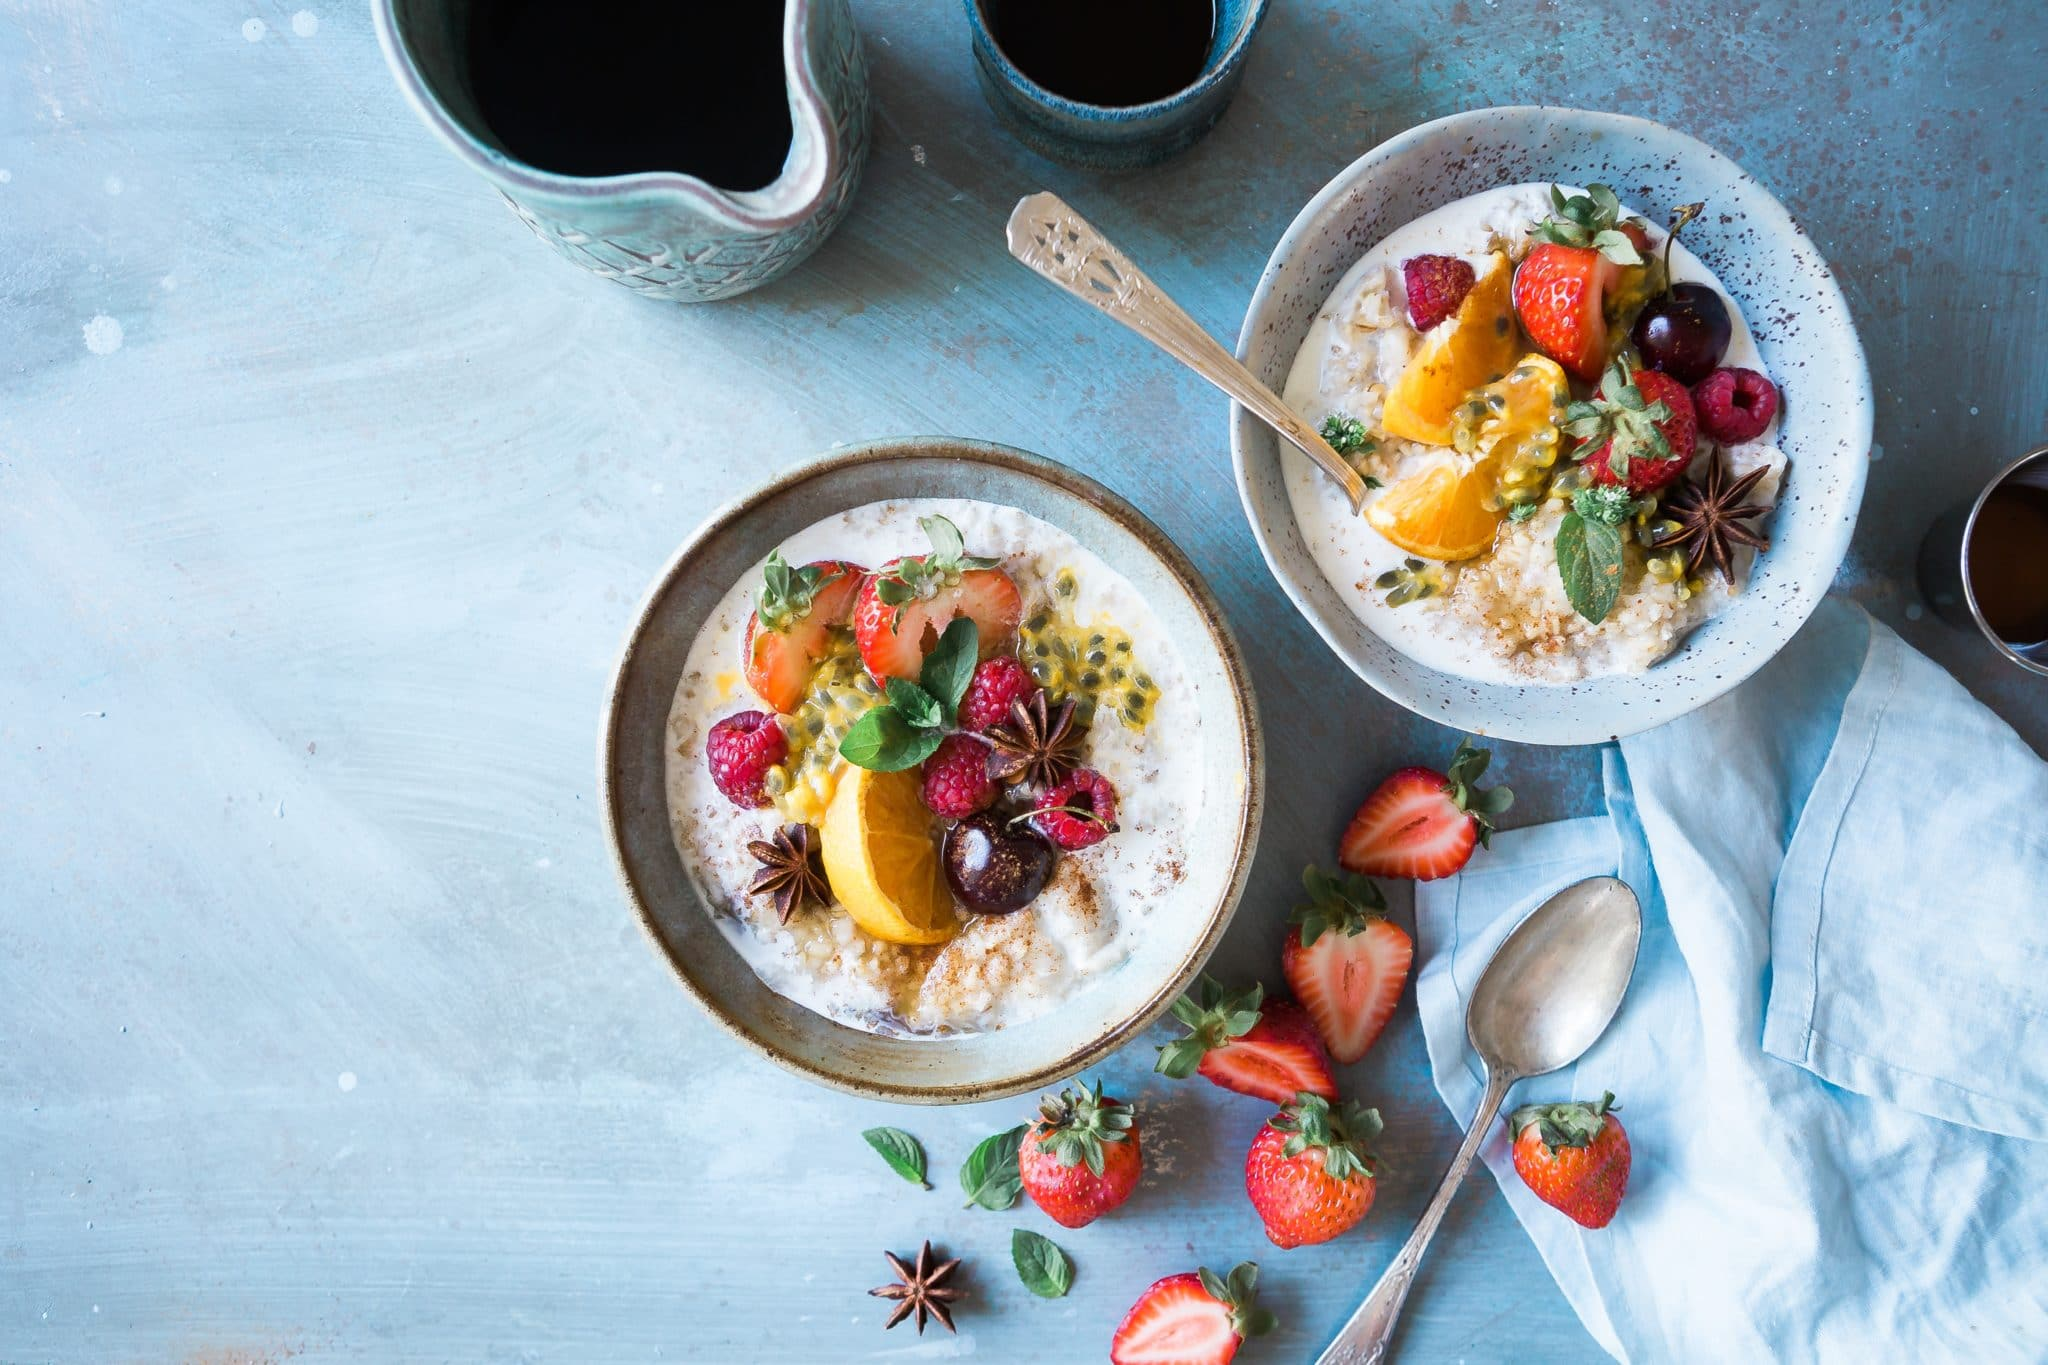 Two bowls of yogurt topped with a variety of fruit.